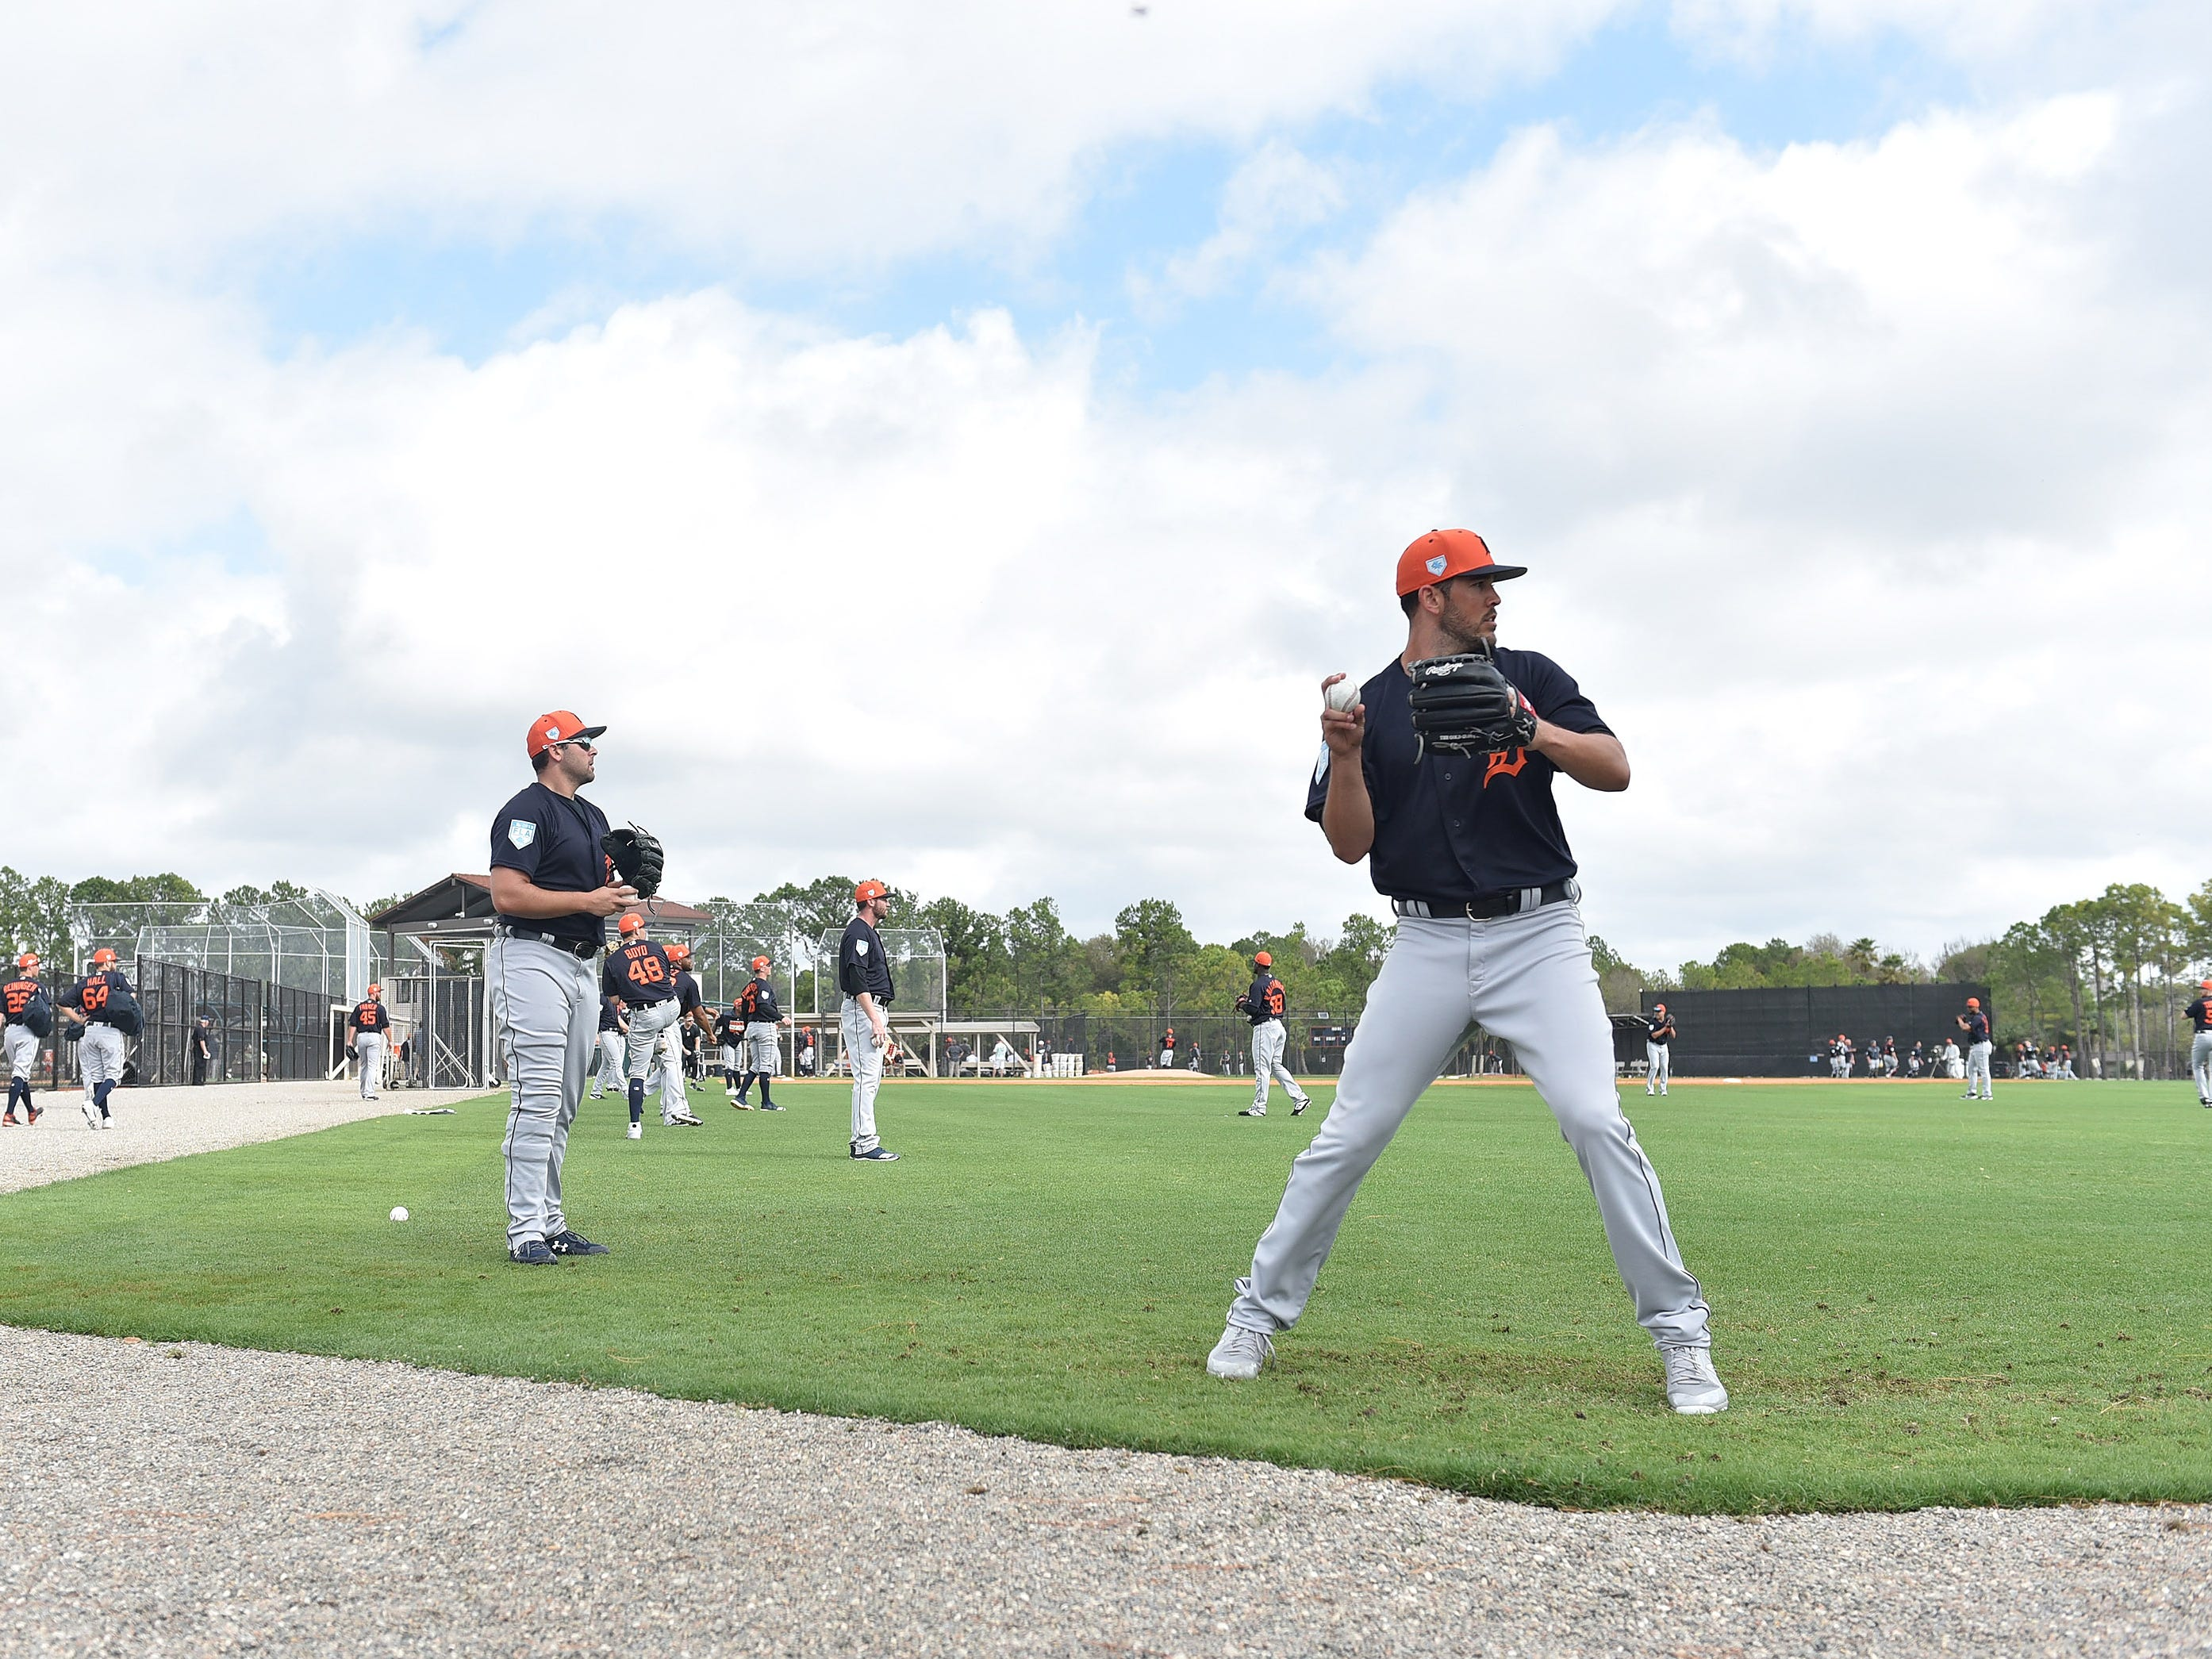 Tigers pitchers Drew VerHagen, right, and Michael Fulmer warm up their arms.